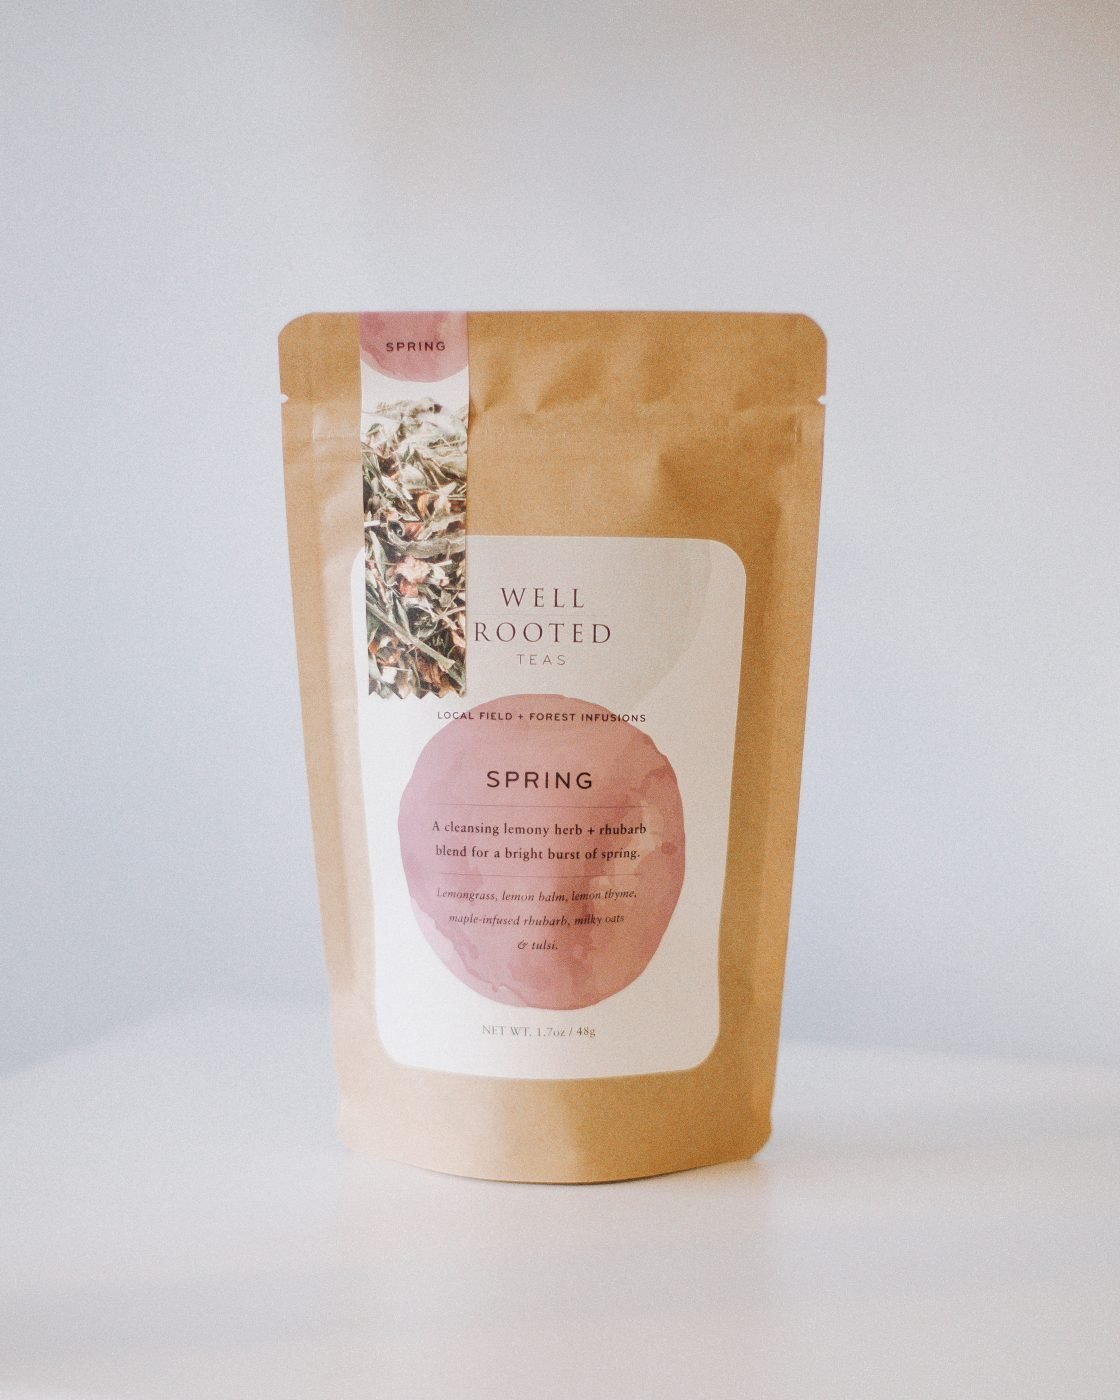 spring tea by well rooted teas